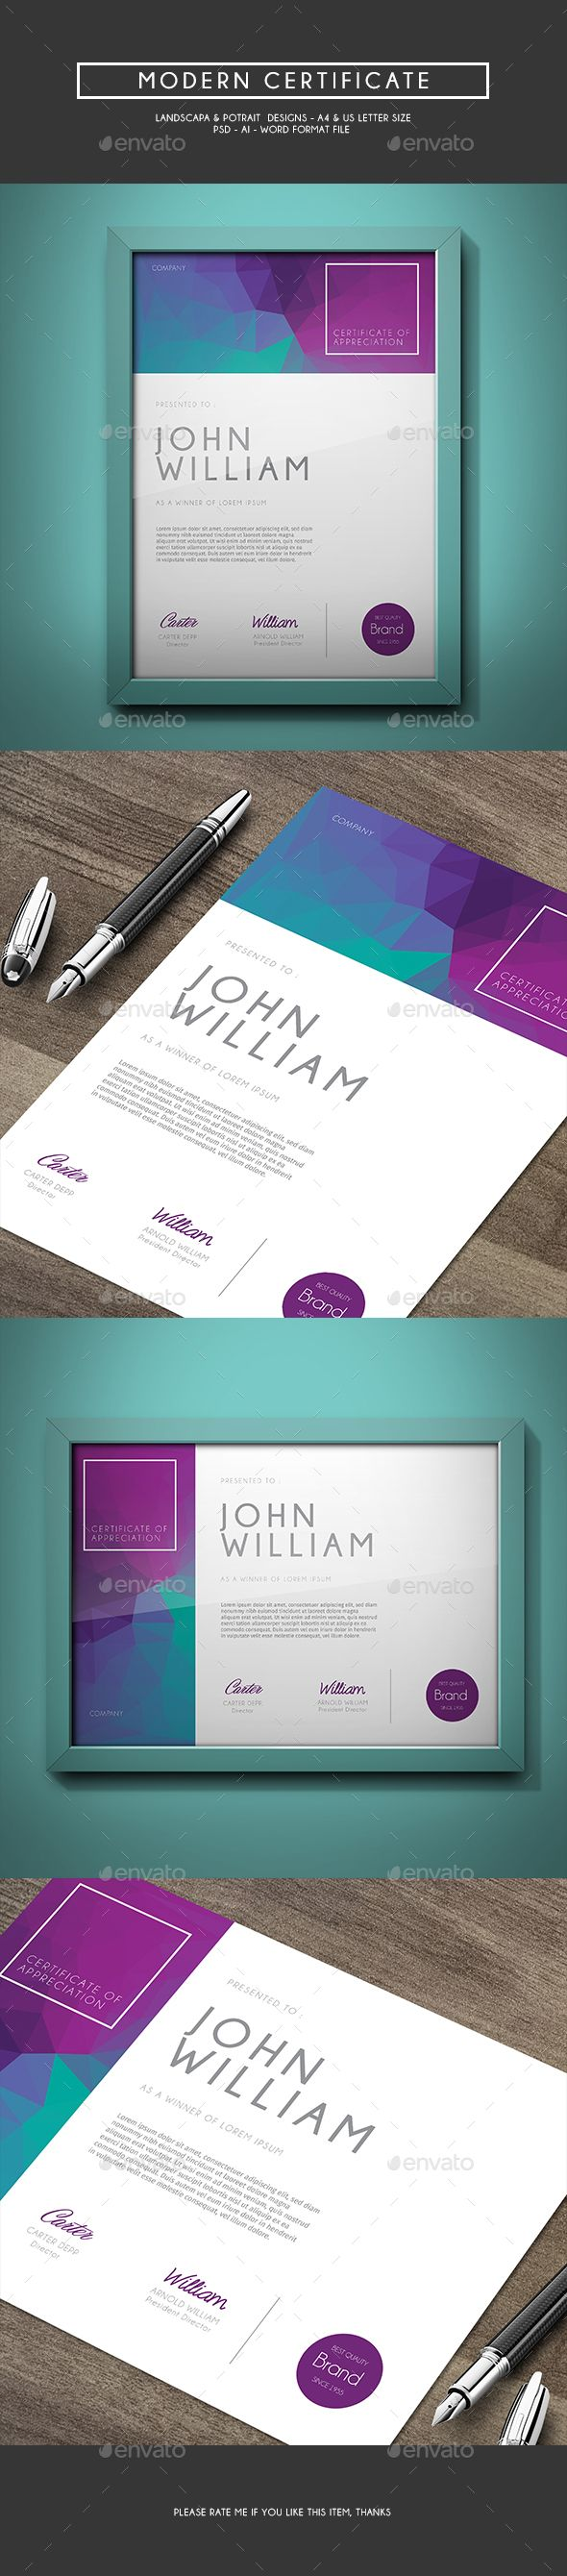 Best 25 certificate design ideas on pinterest certificate modern certificate yadclub Choice Image